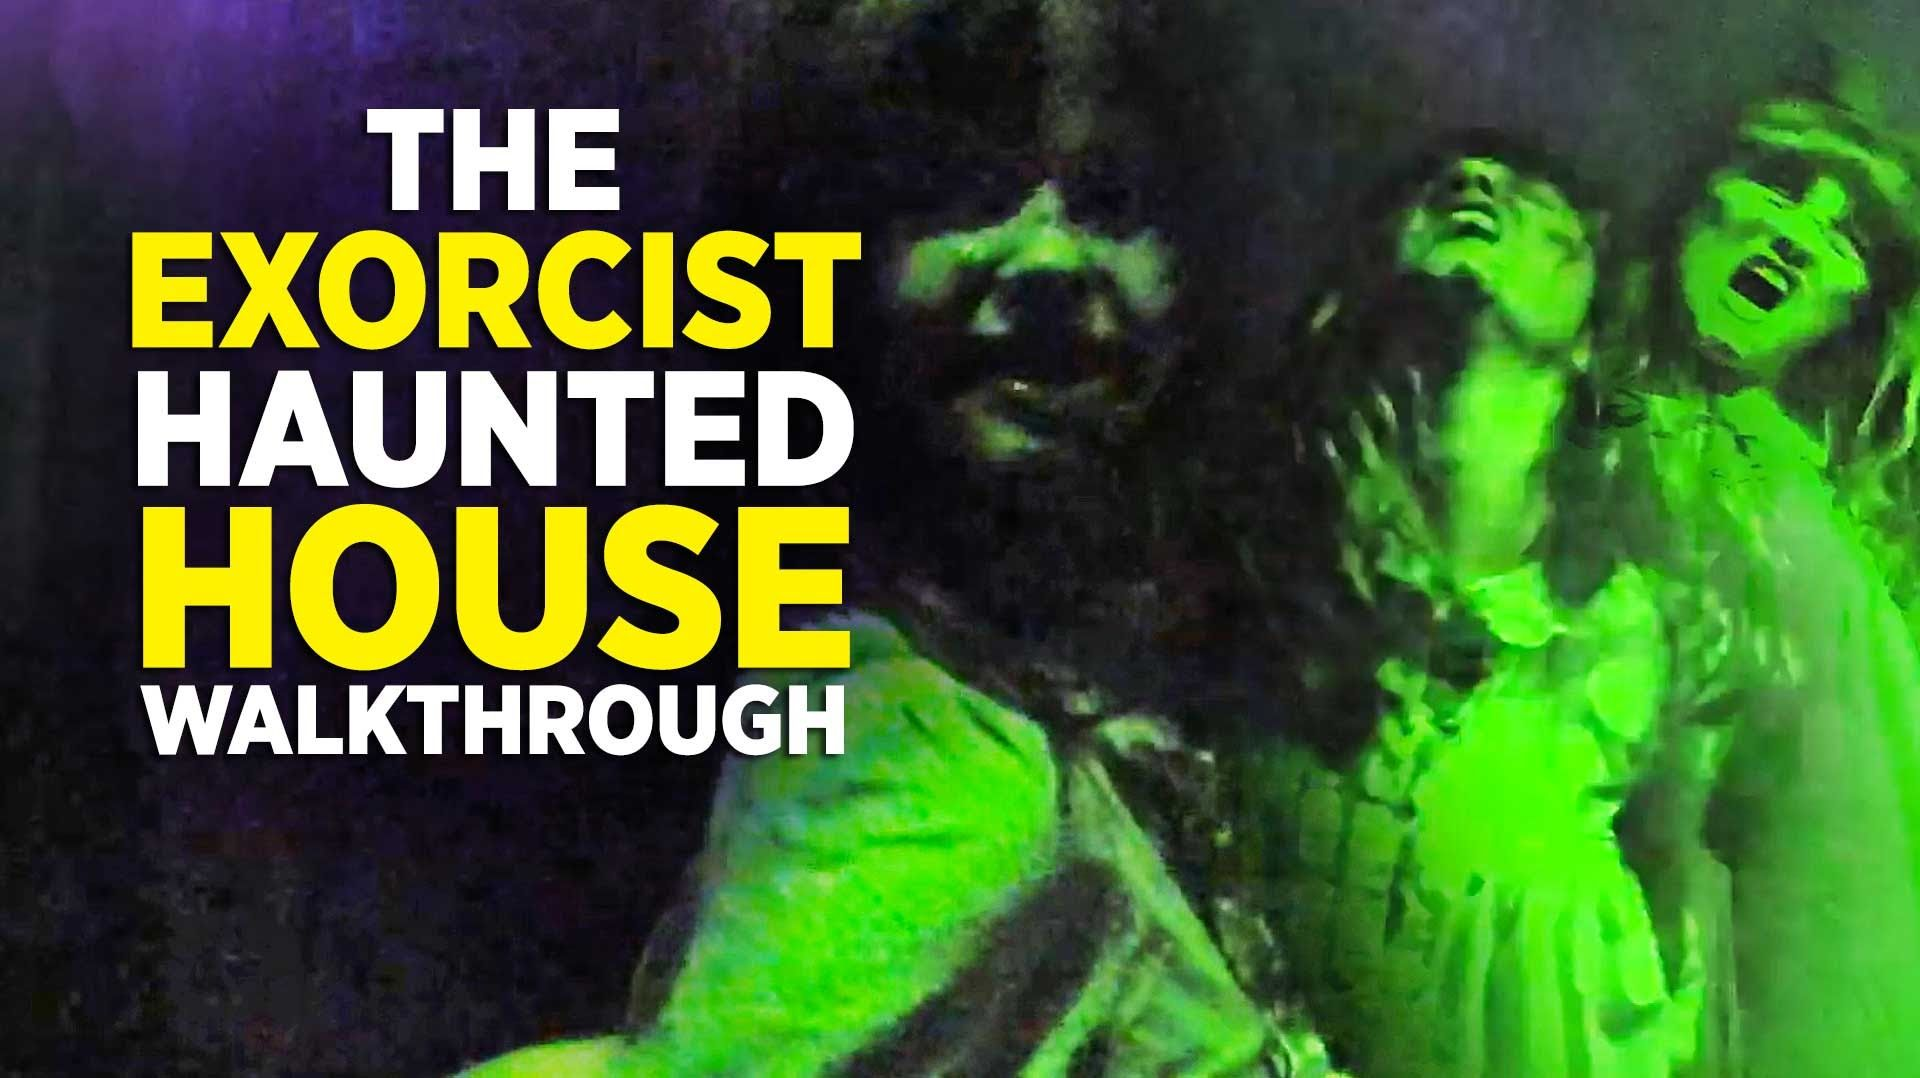 the exorcist haunted house walkthrough at halloween horror nights